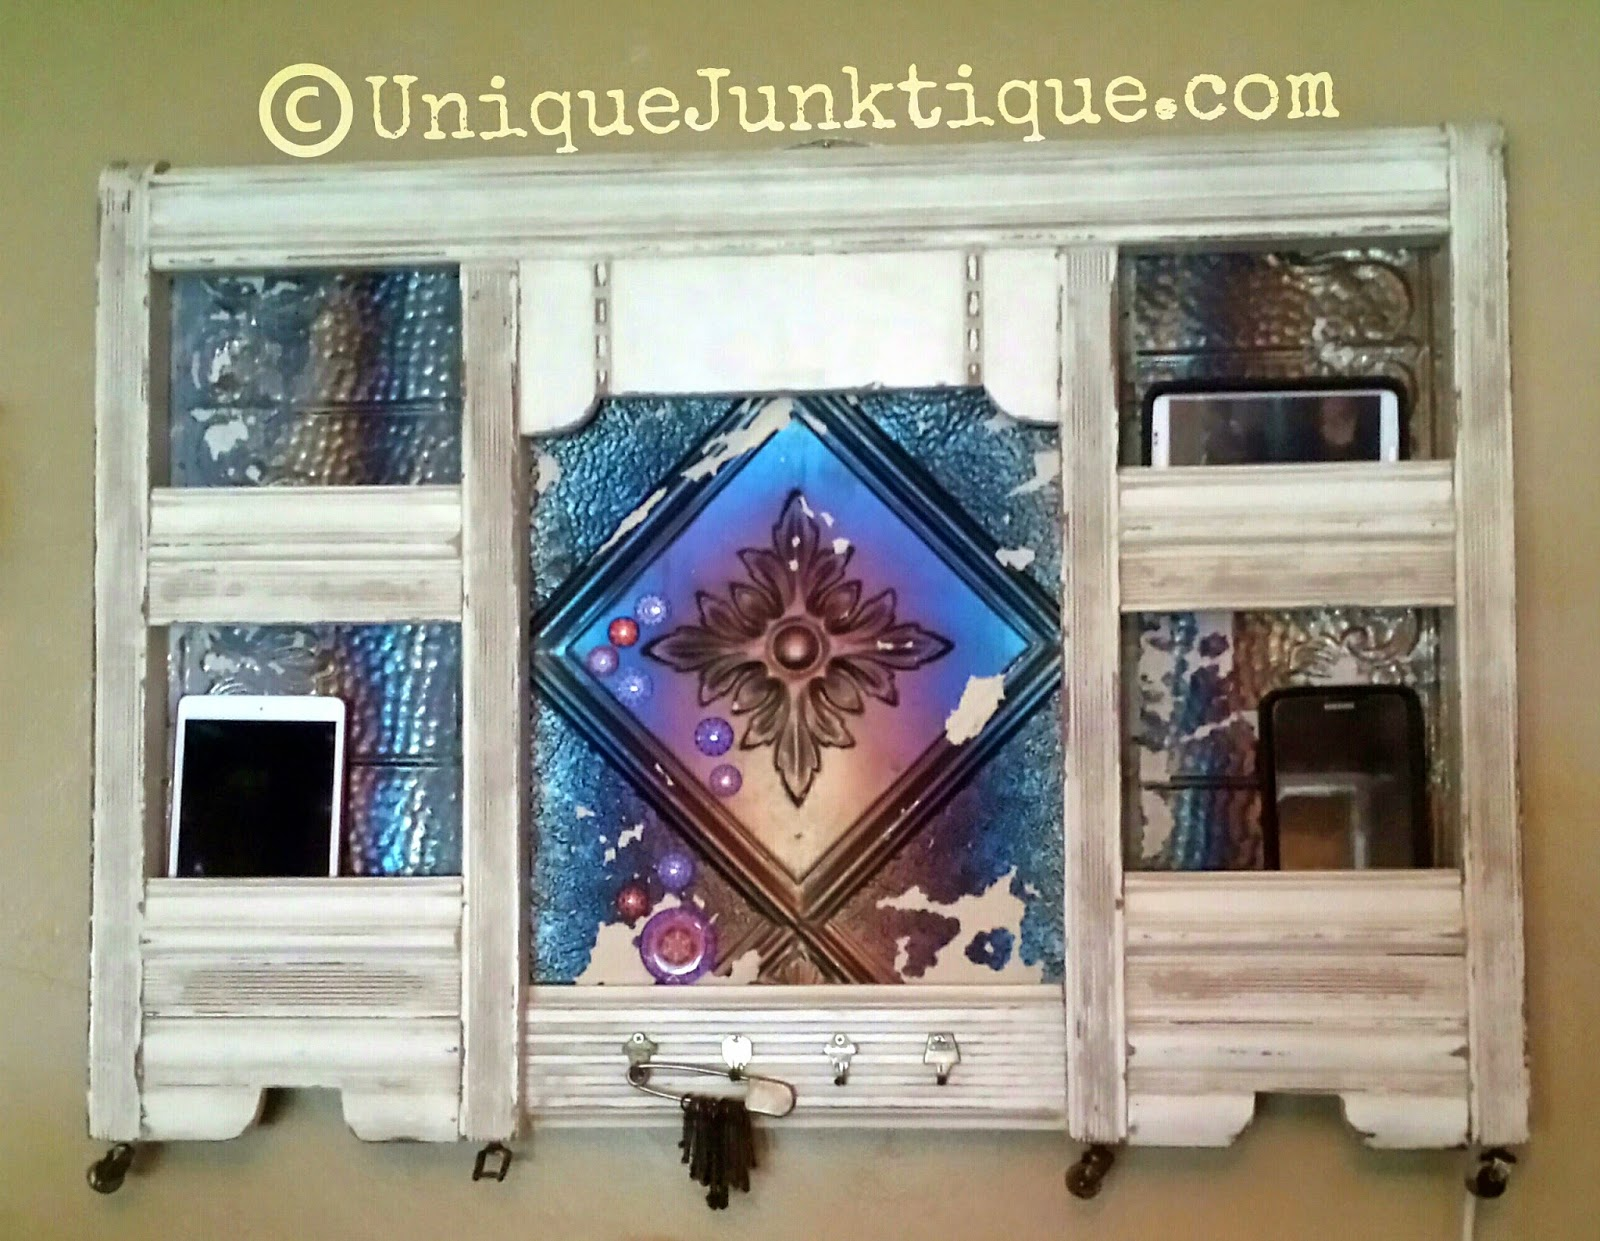 salvaged upcycled message board charging station by uniquejunktique